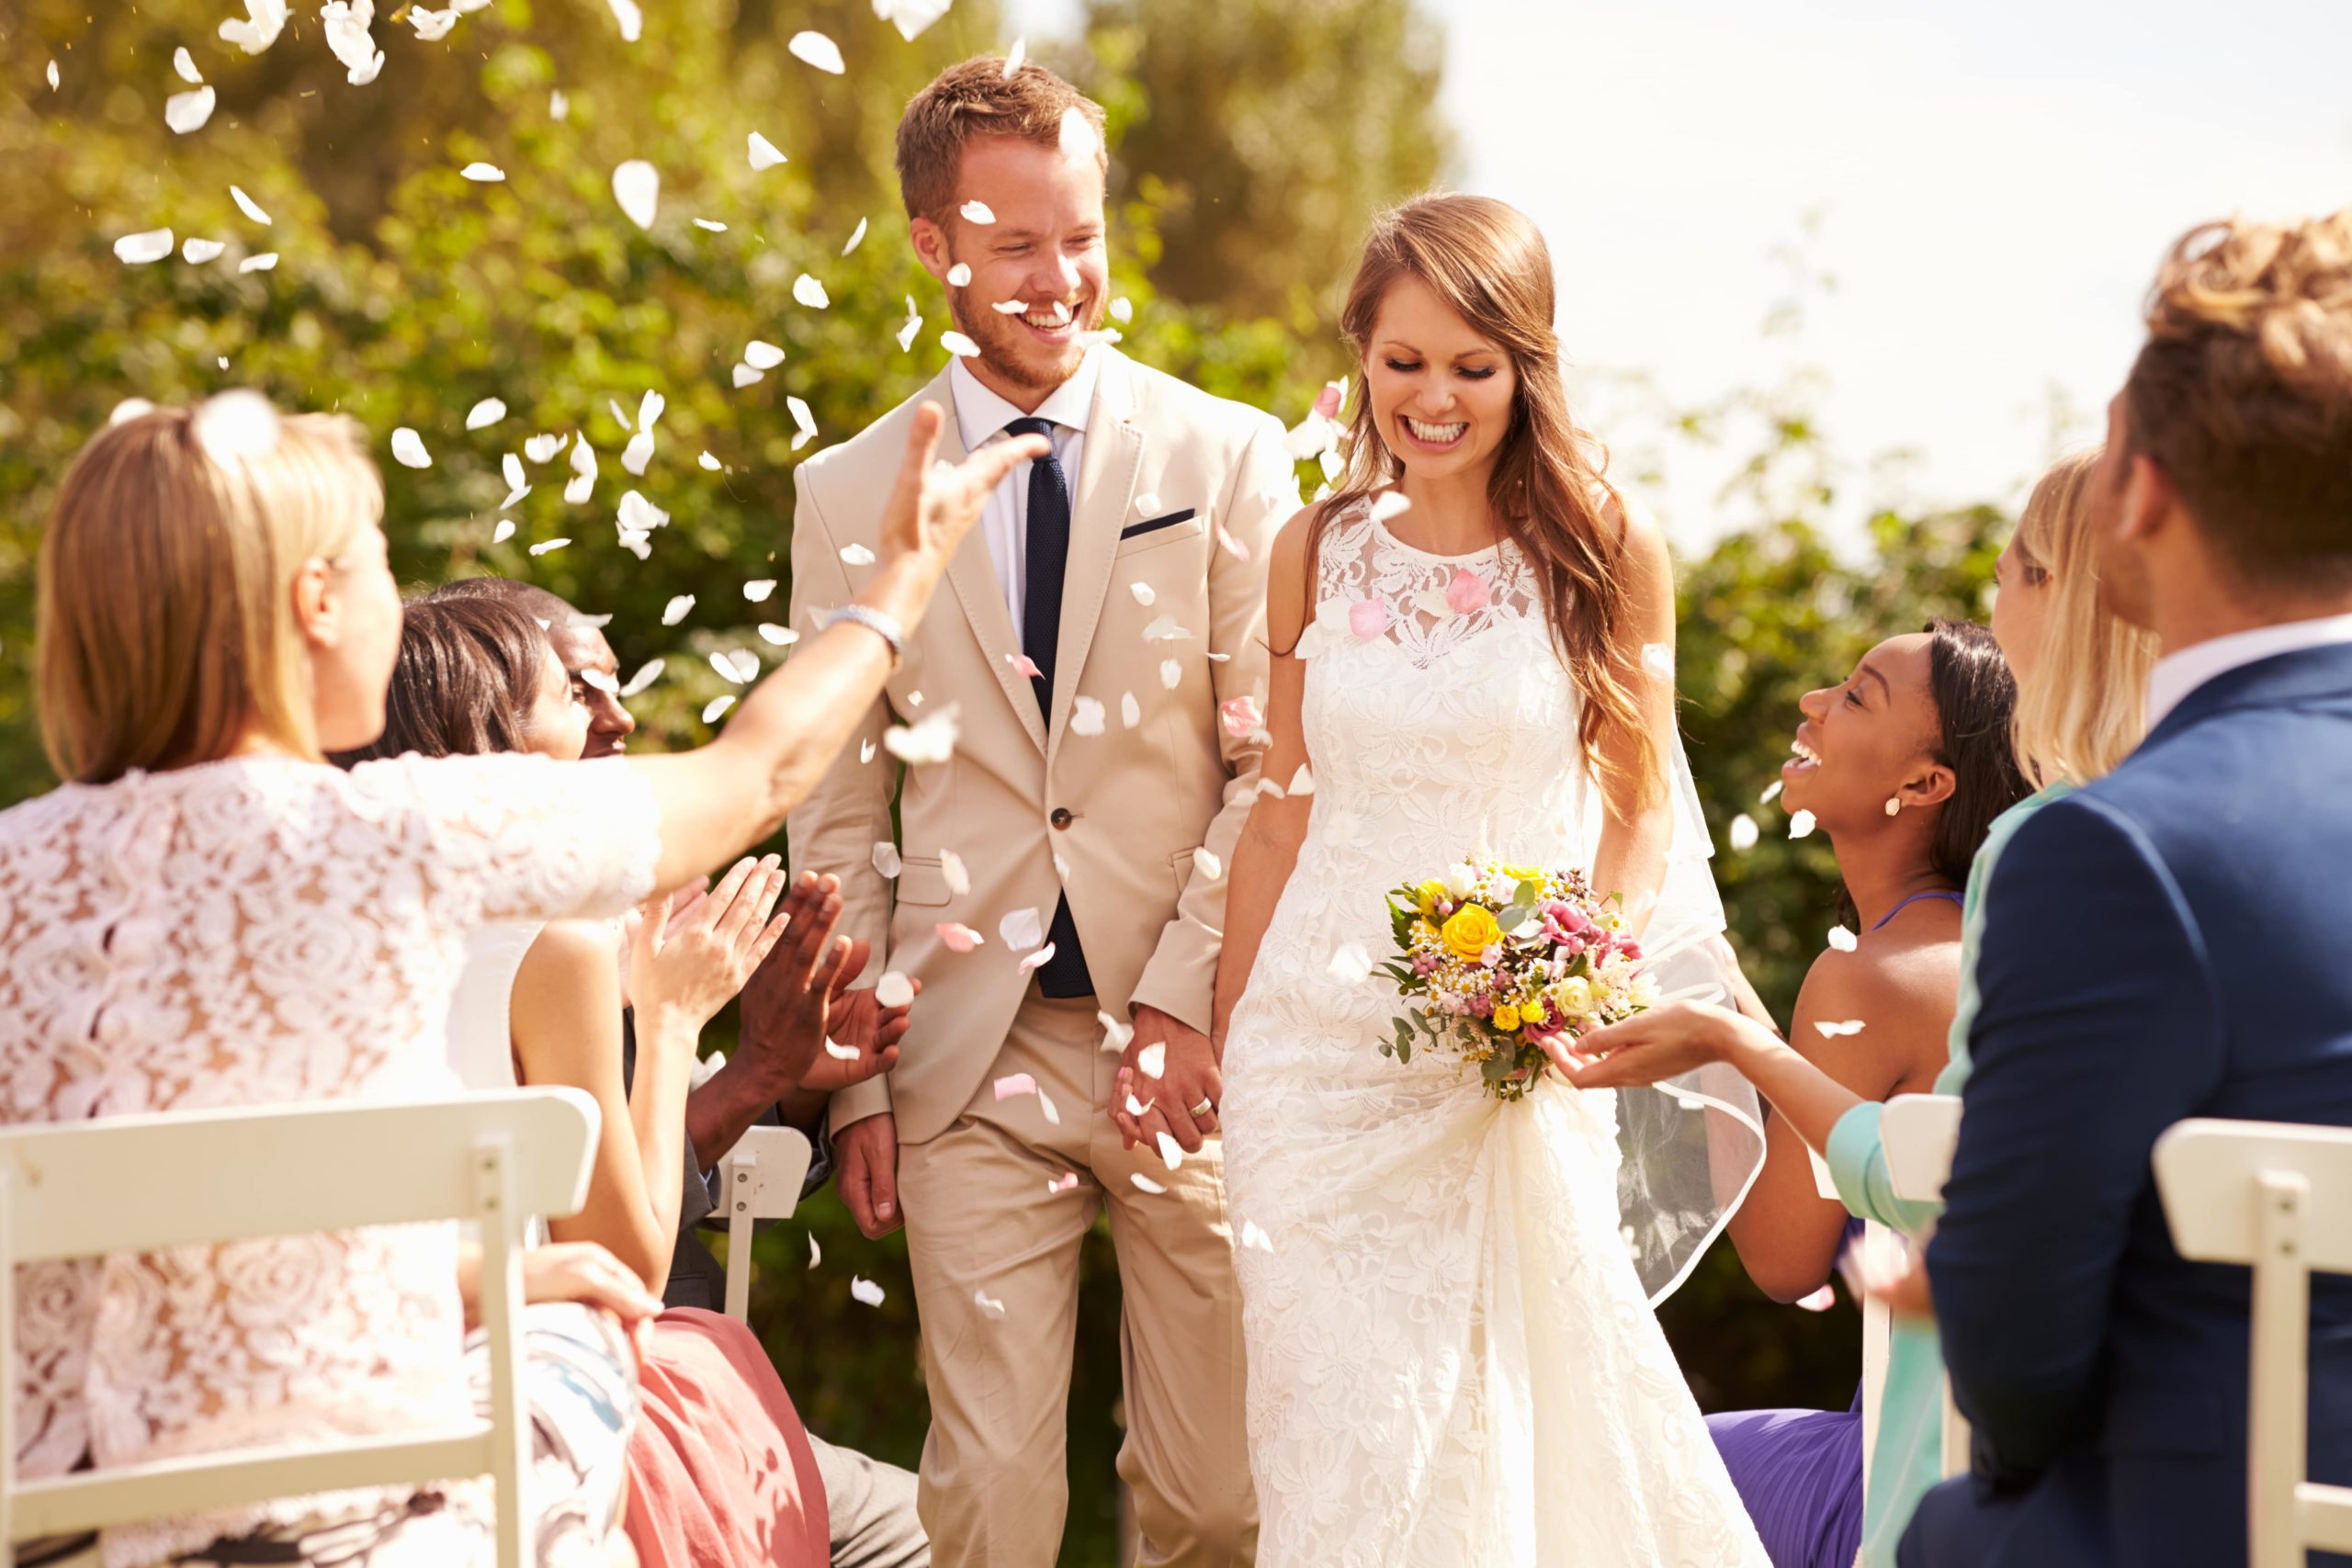 Wedding Loans: The New Trend - Mac Credit